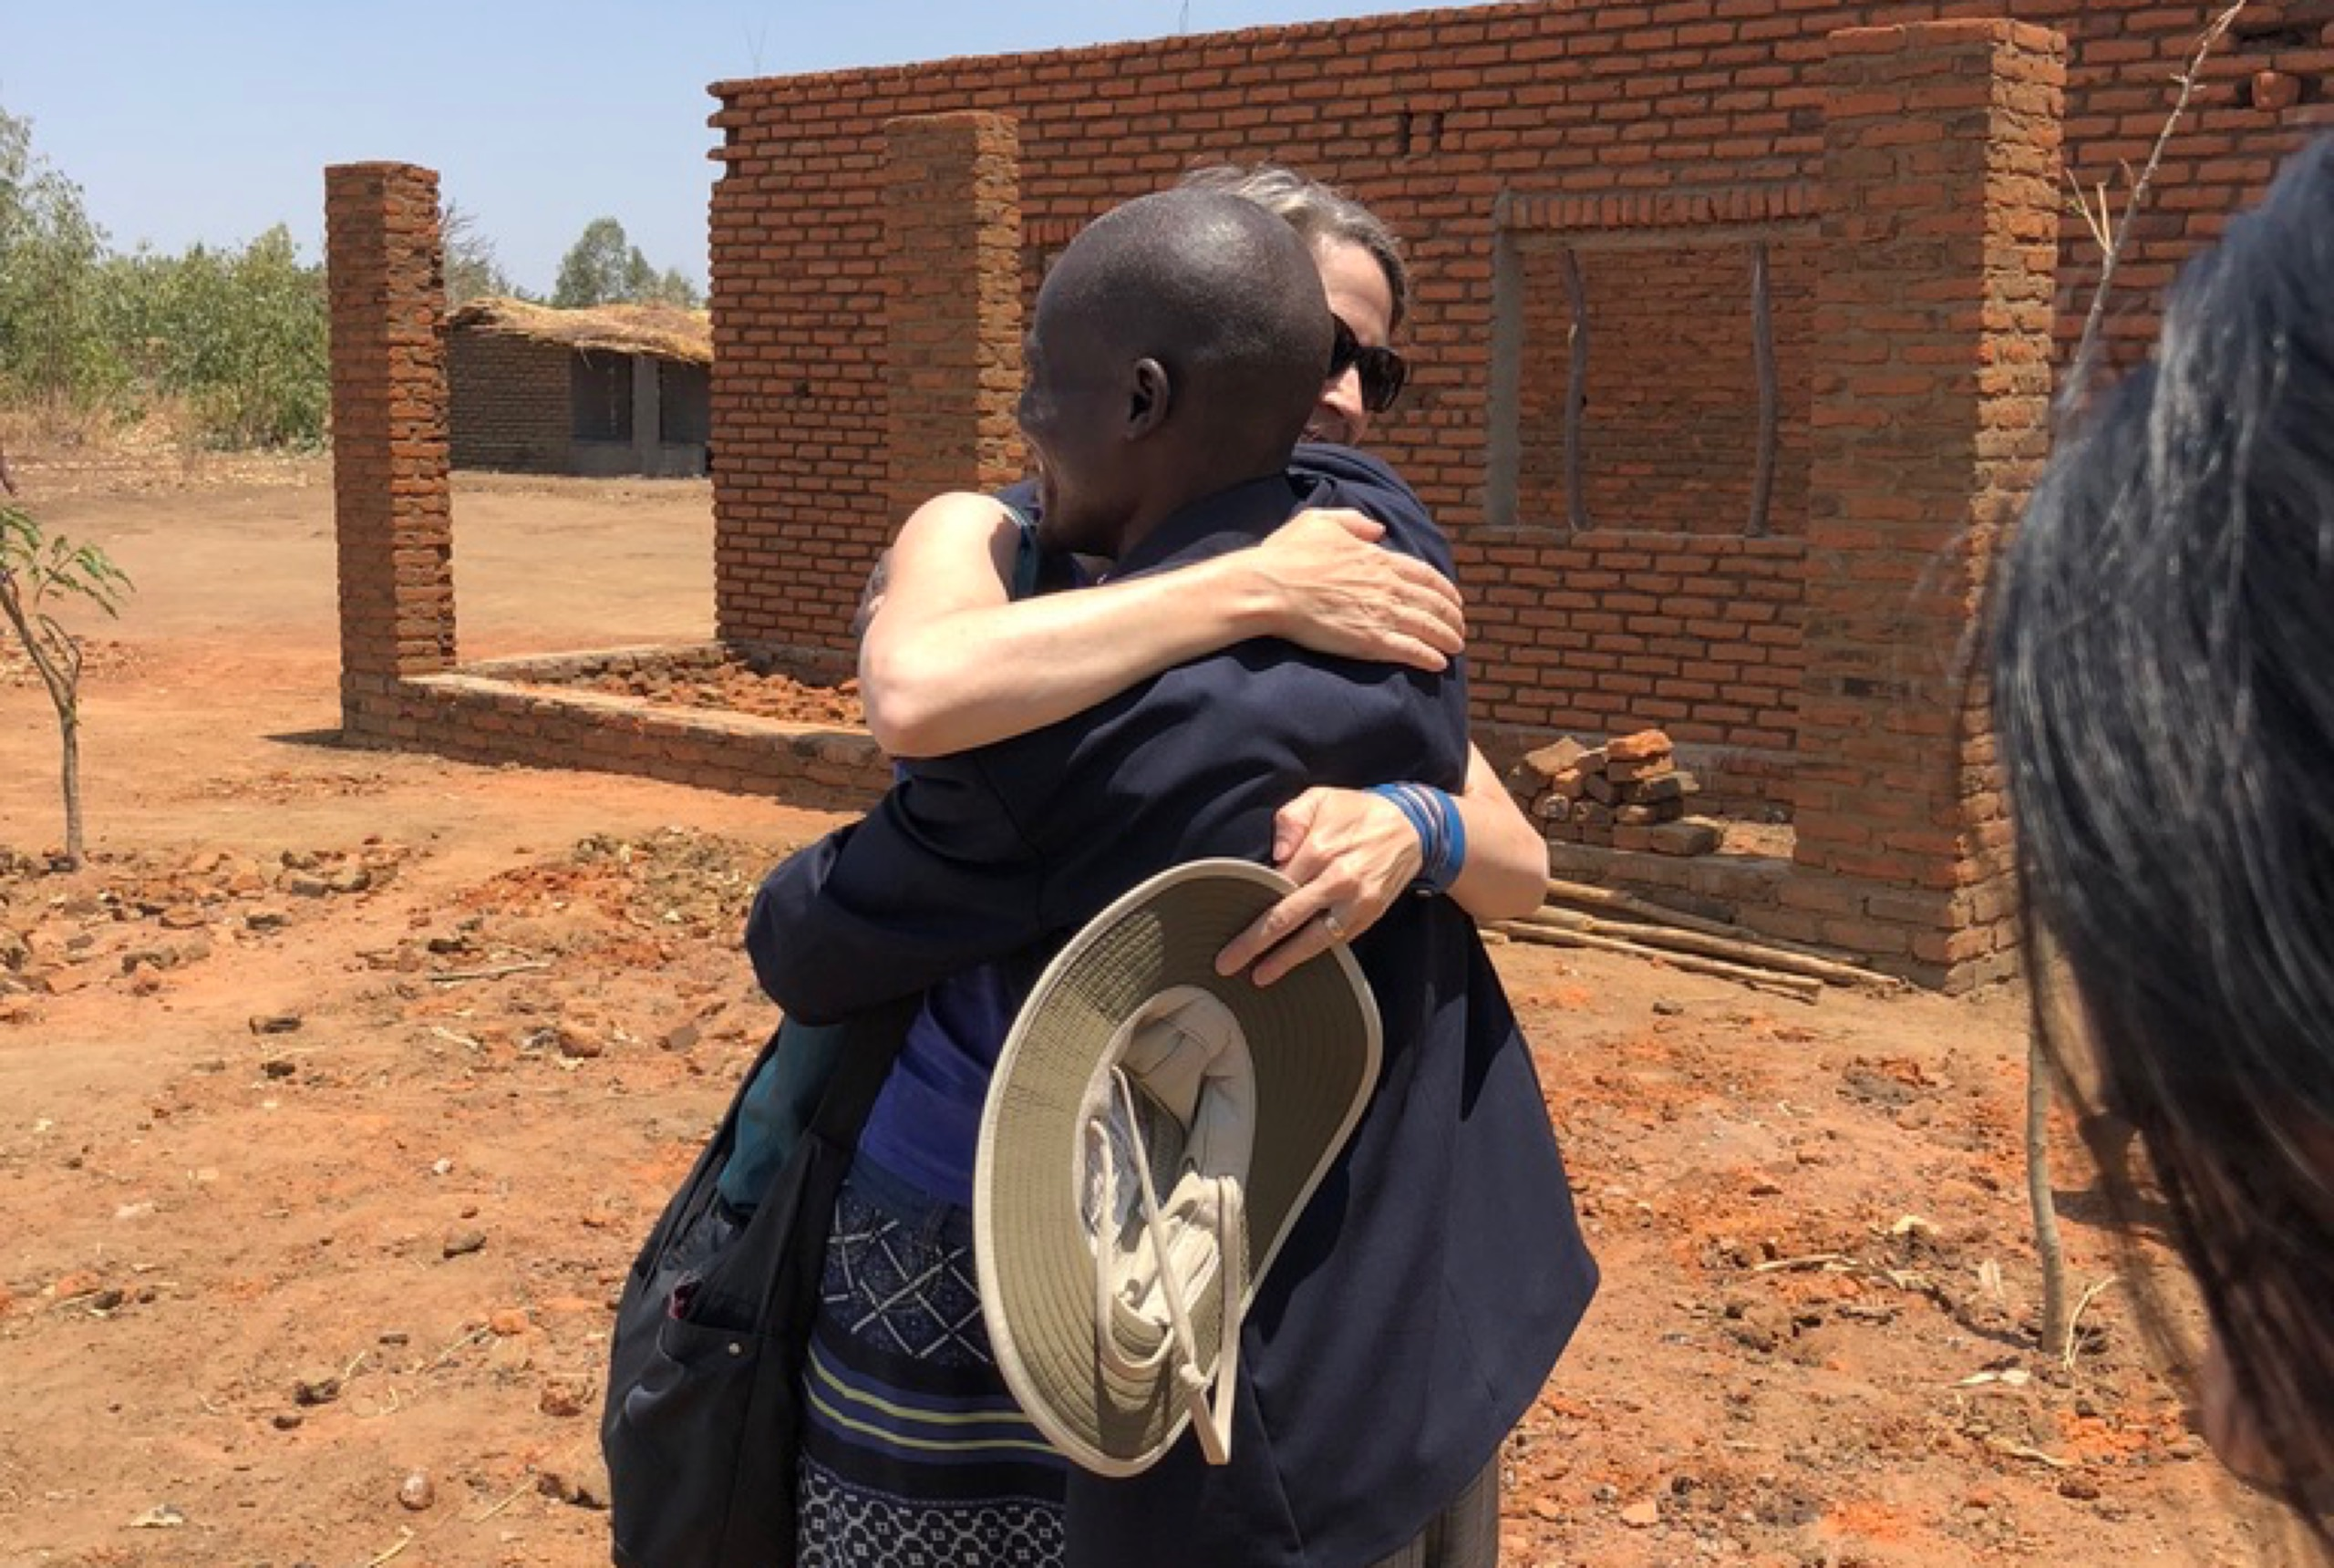 A woman and a man are hugging each other.